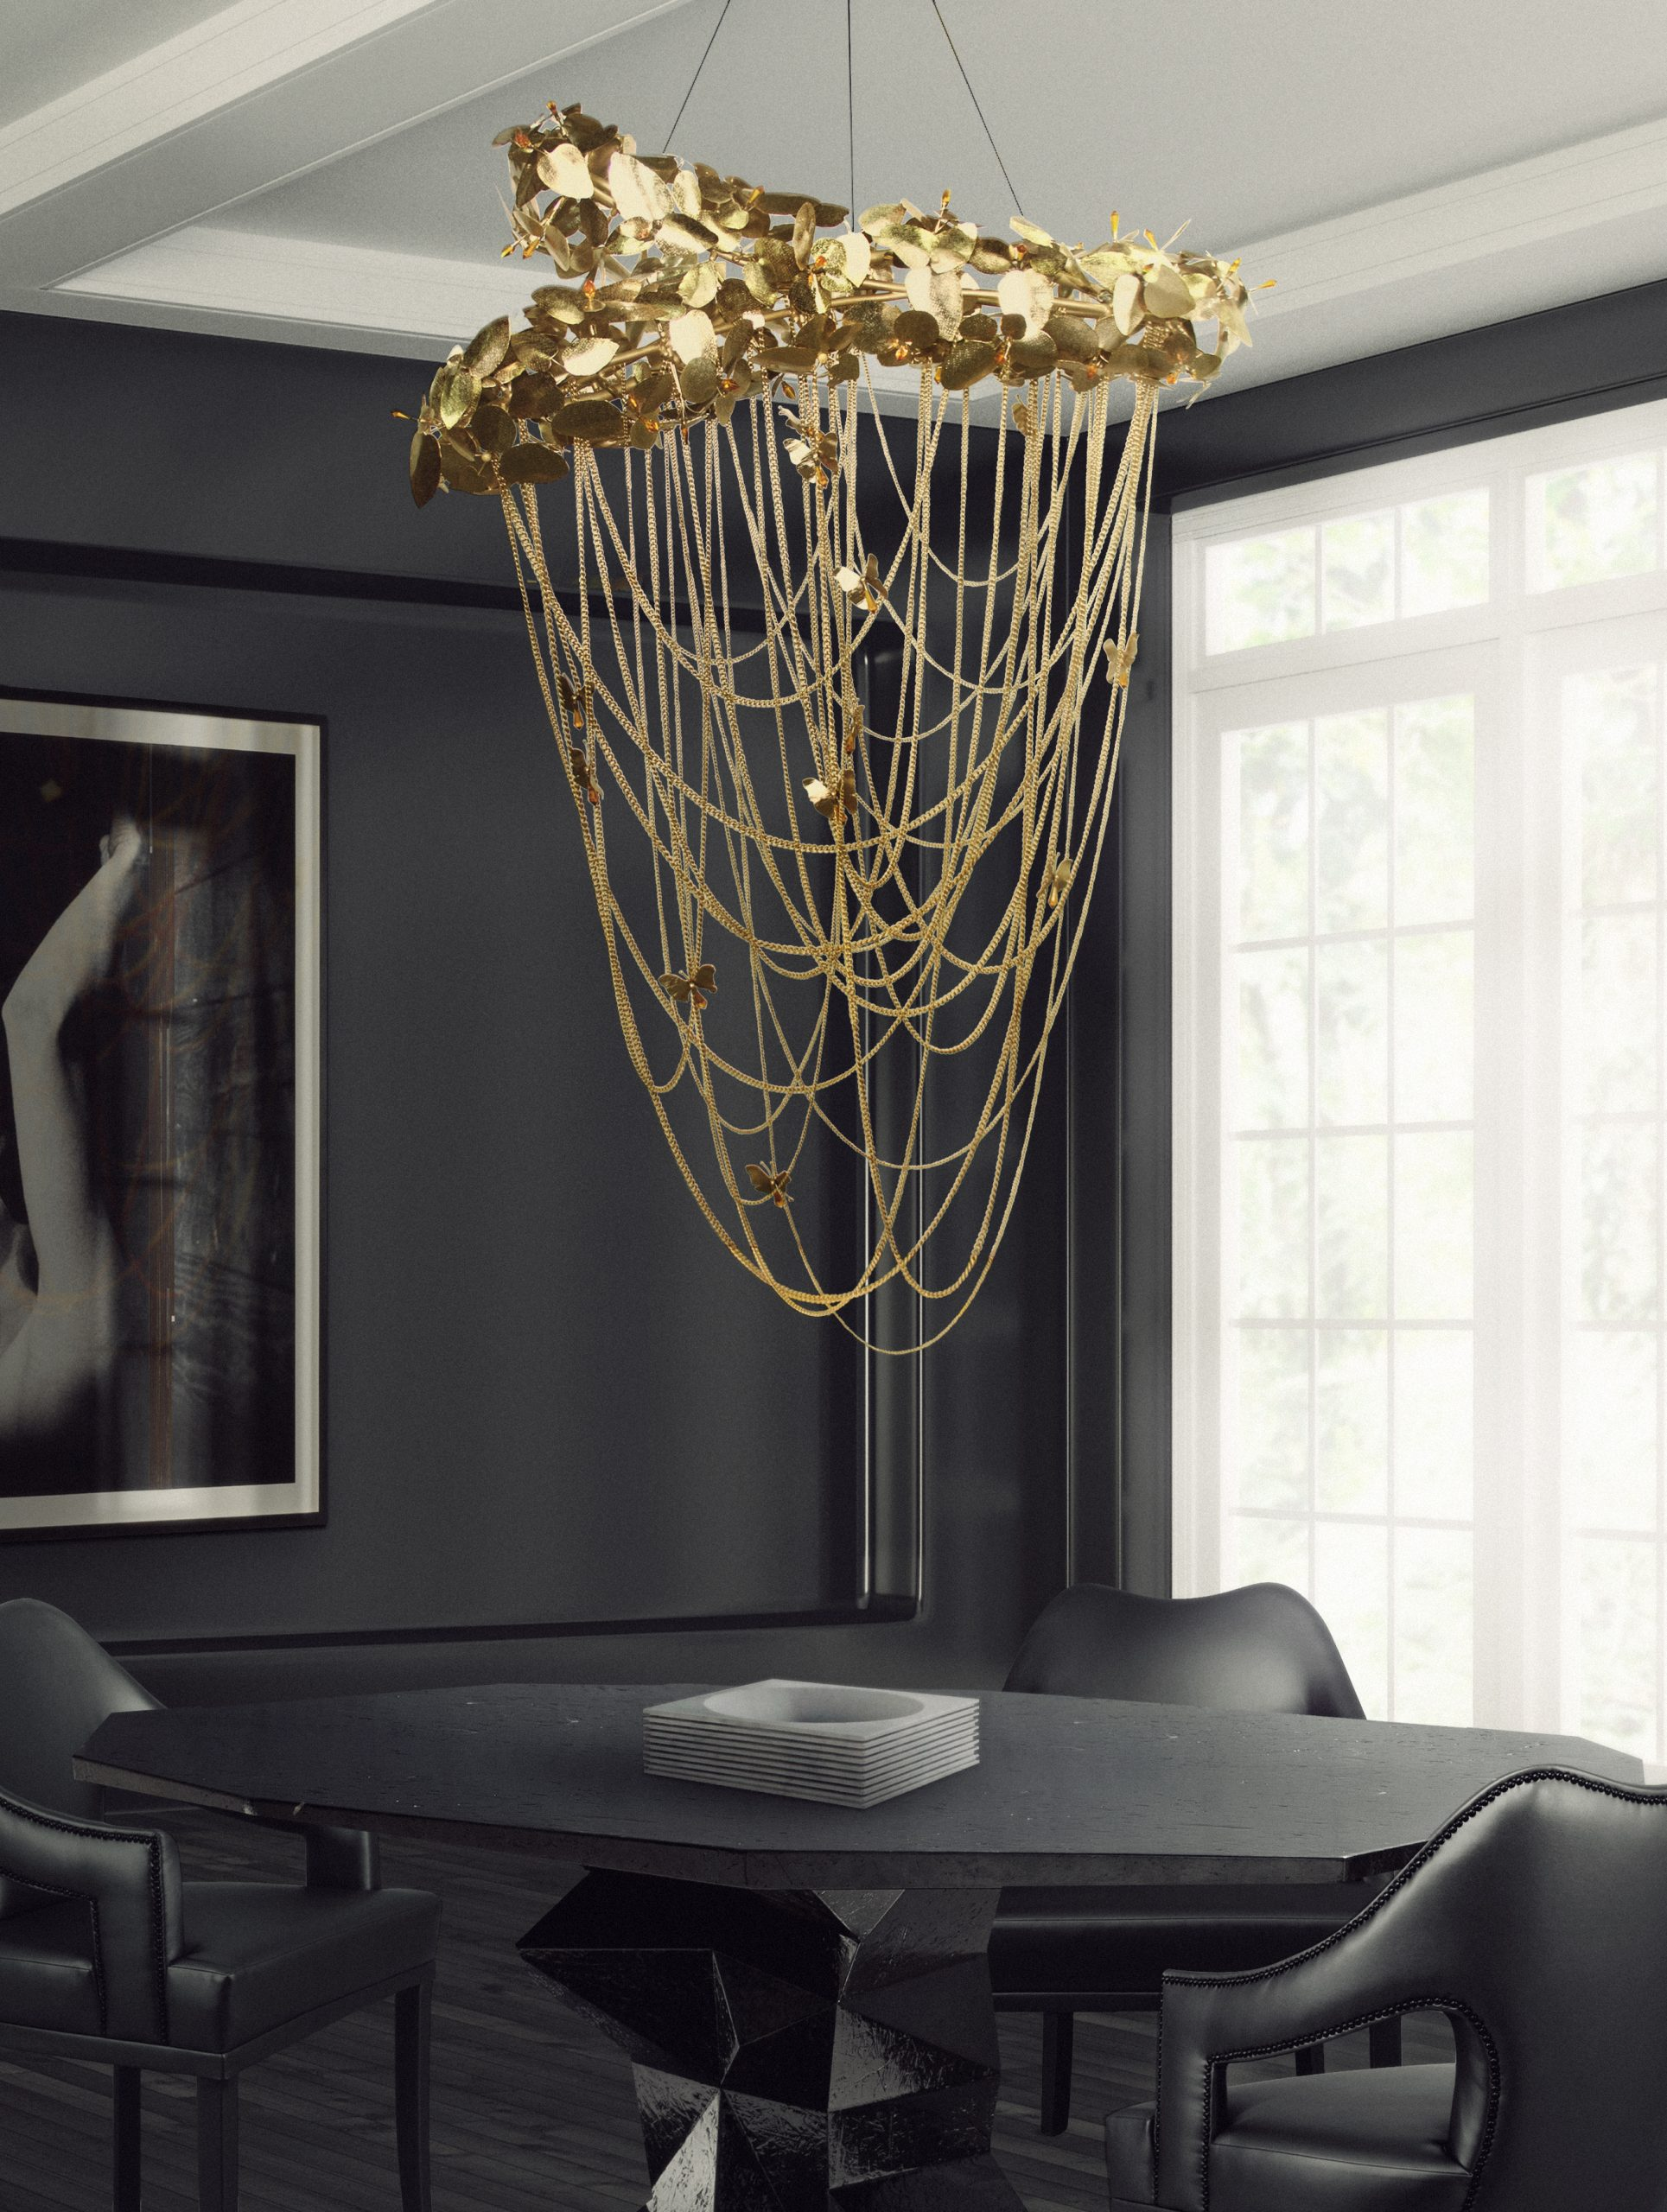 The McQueen Collection - Where Lighting And Artwork Come Together the mcqueen collection The McQueen Collection – Where Lighting And Artwork Come Together mcqueen chandelier cover scaled